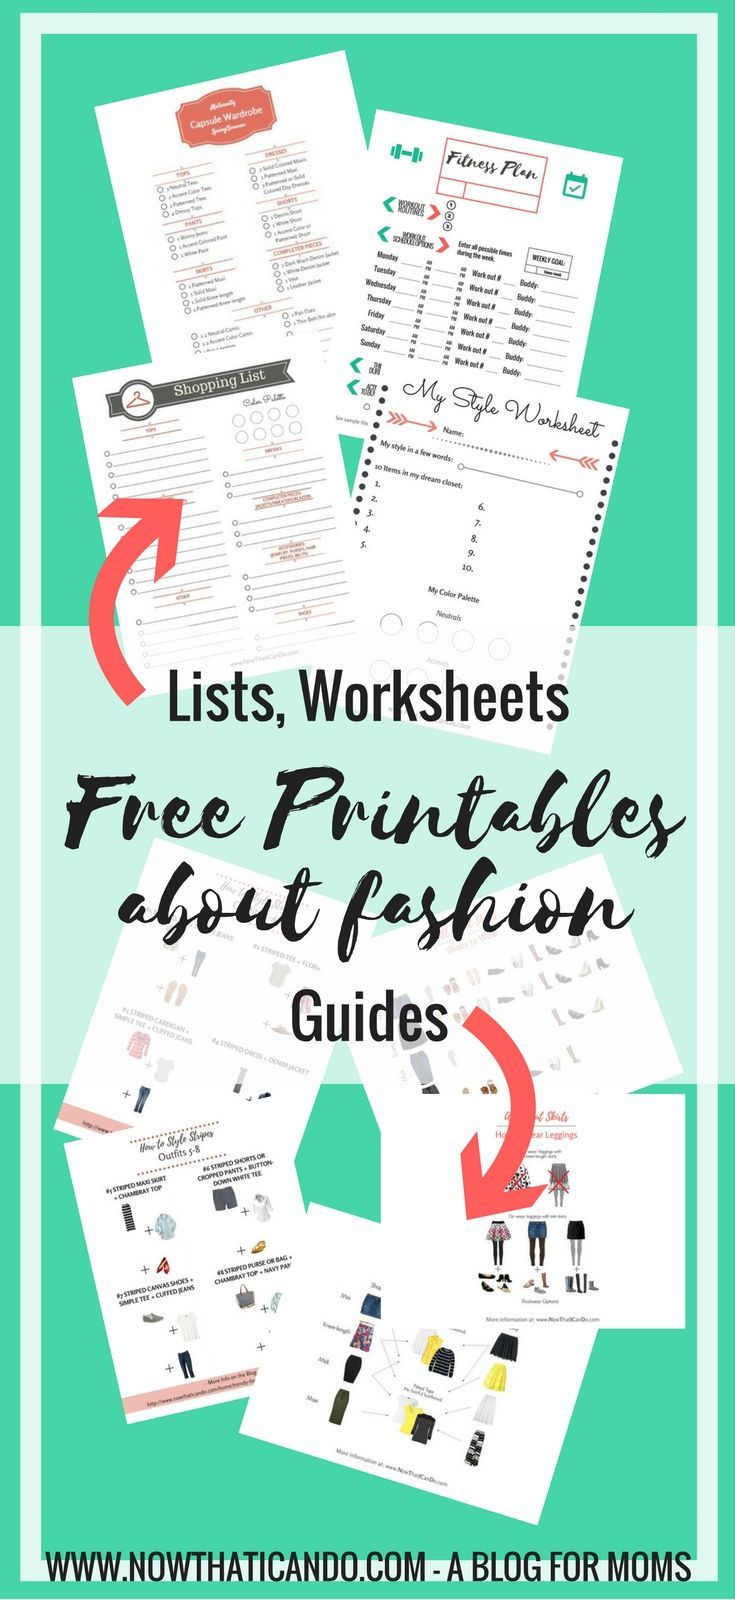 "Looking for easy mom fashion inspiration? This blogger provides it all on her blog ""for moms fighting the frumpy monster."" Find free Printable Guides, Worksheets, and Checklists about Mom Fashion, Finding Your Style, Do's and Dont's of Fashion, and Organi"